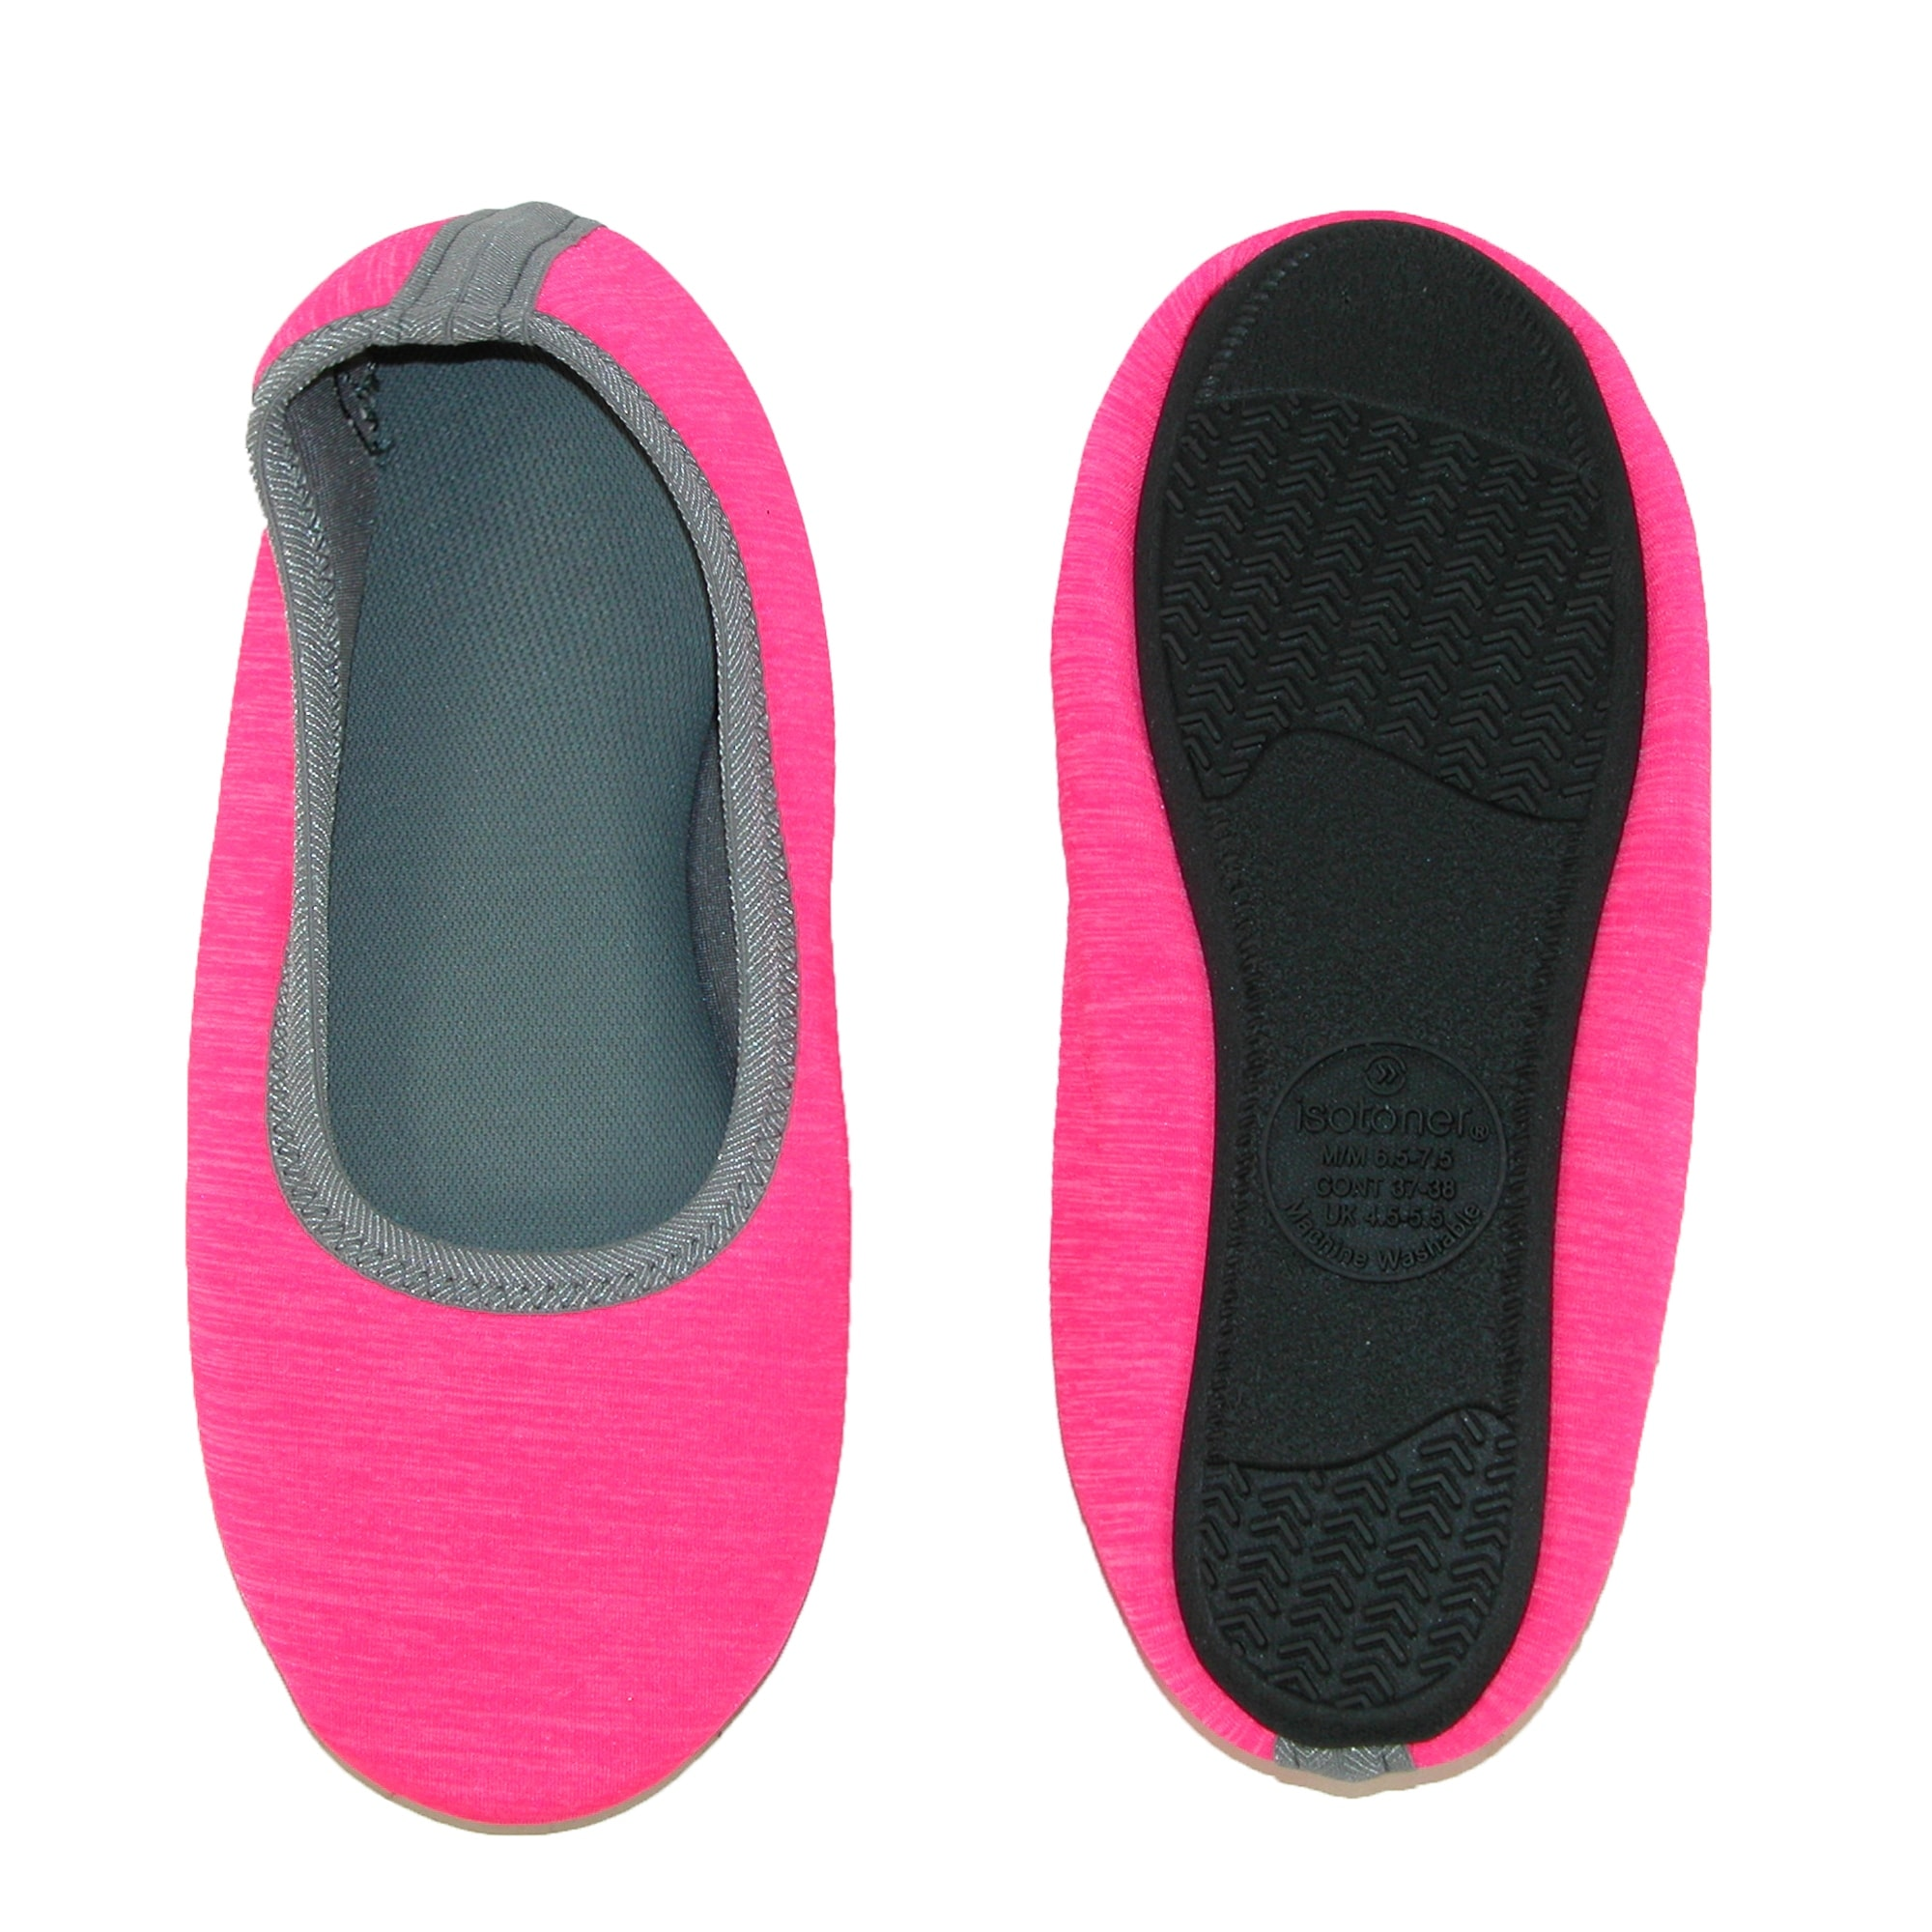 d448cbe7a79 Shop Isotoner Women s Heathered Sport Drew Ballerina Slippers - Free  Shipping On Orders Over  45 - Overstock - 14310609